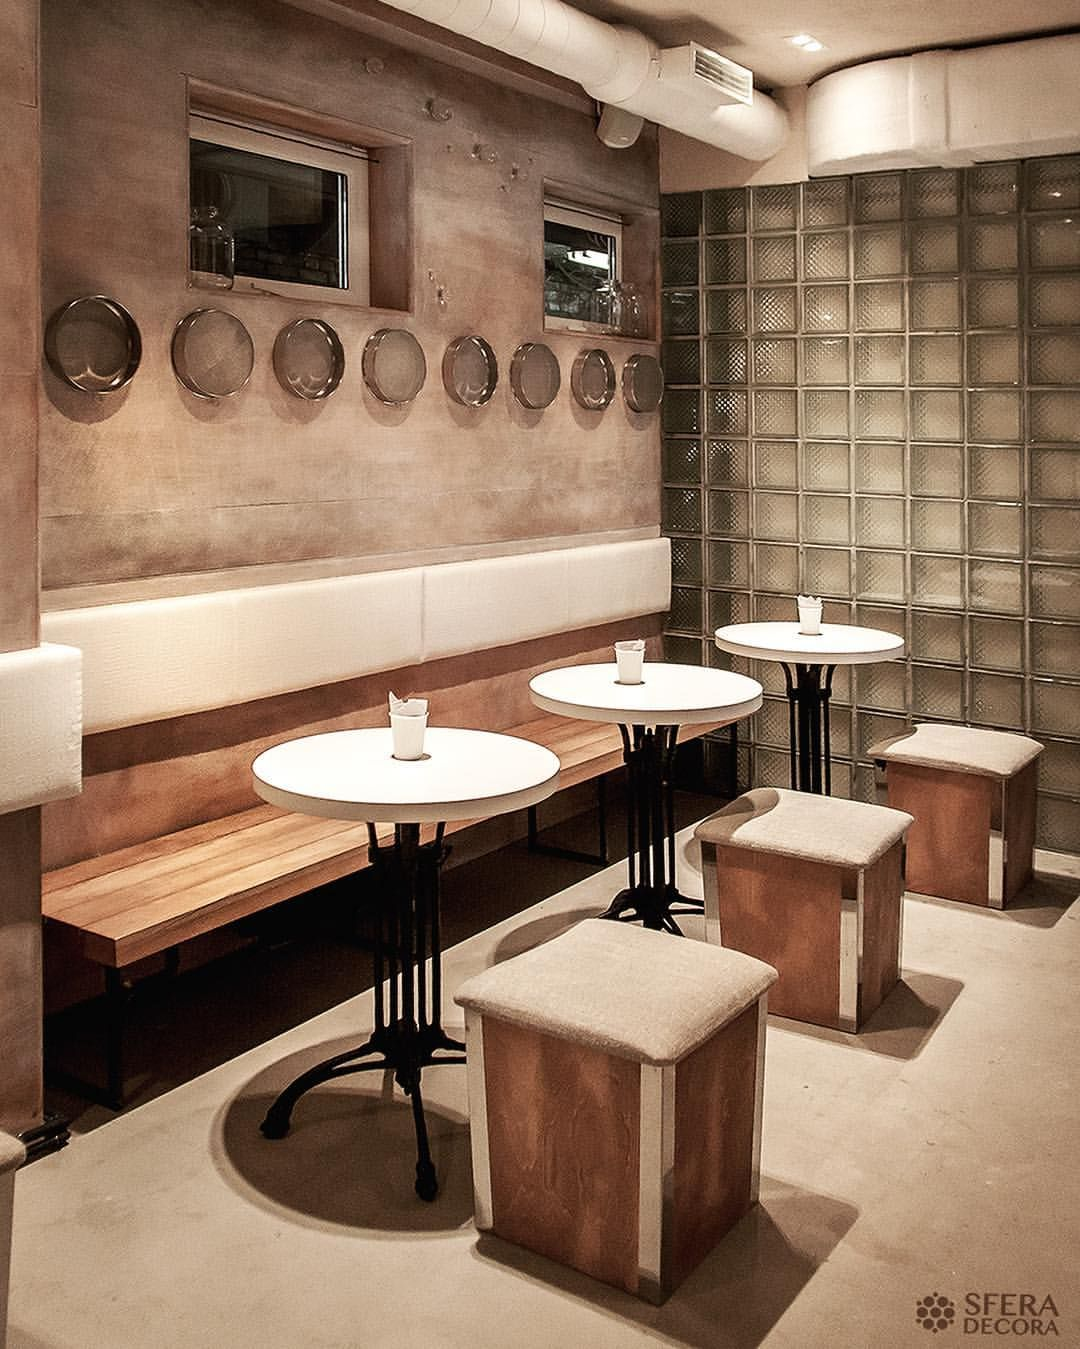 Bistro Restaurant, Restaurant Design, Cafe Chairs And Tables, Cafe Bar,  Coffee Design 15d5f7f504ee